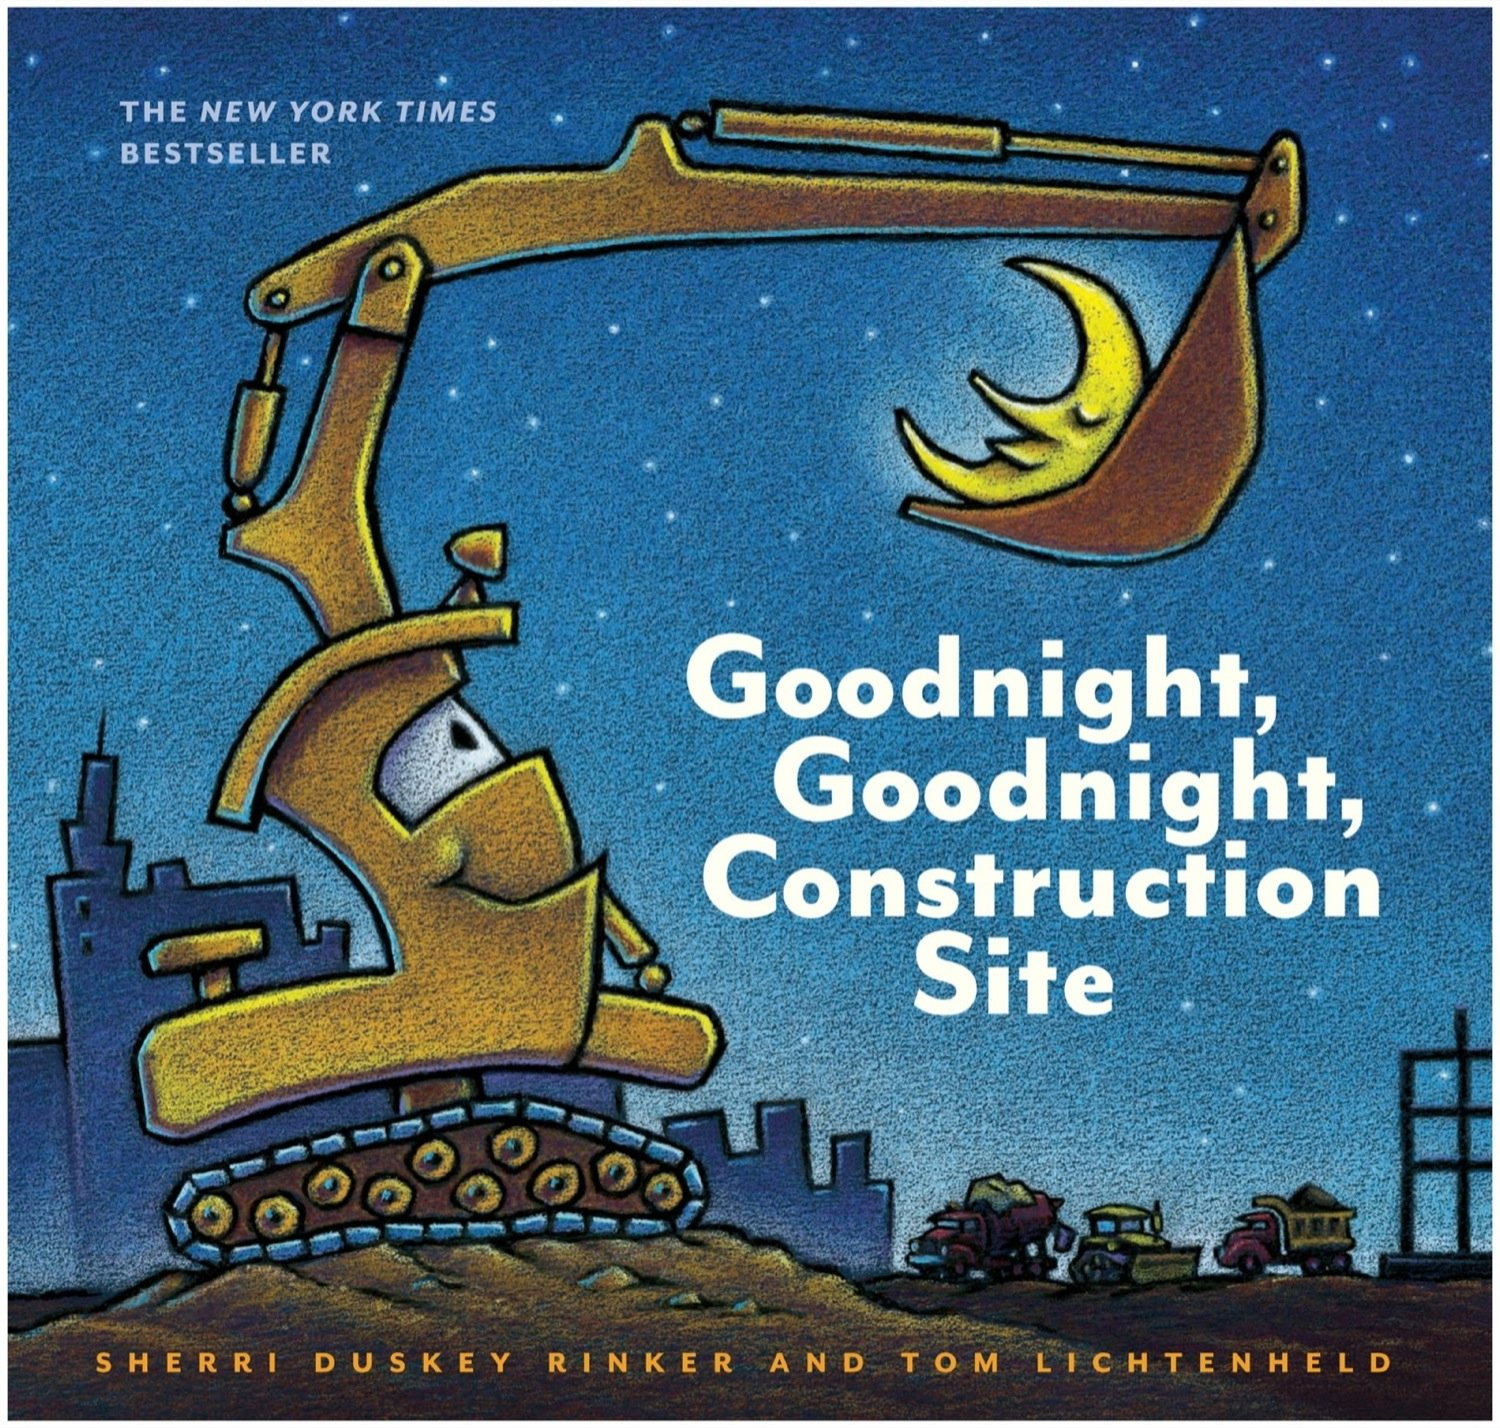 Goodnight, Goodnight Construction Site by Sherri Duskey Rinker, illustrated by Tom Lichtenheld. ($10)